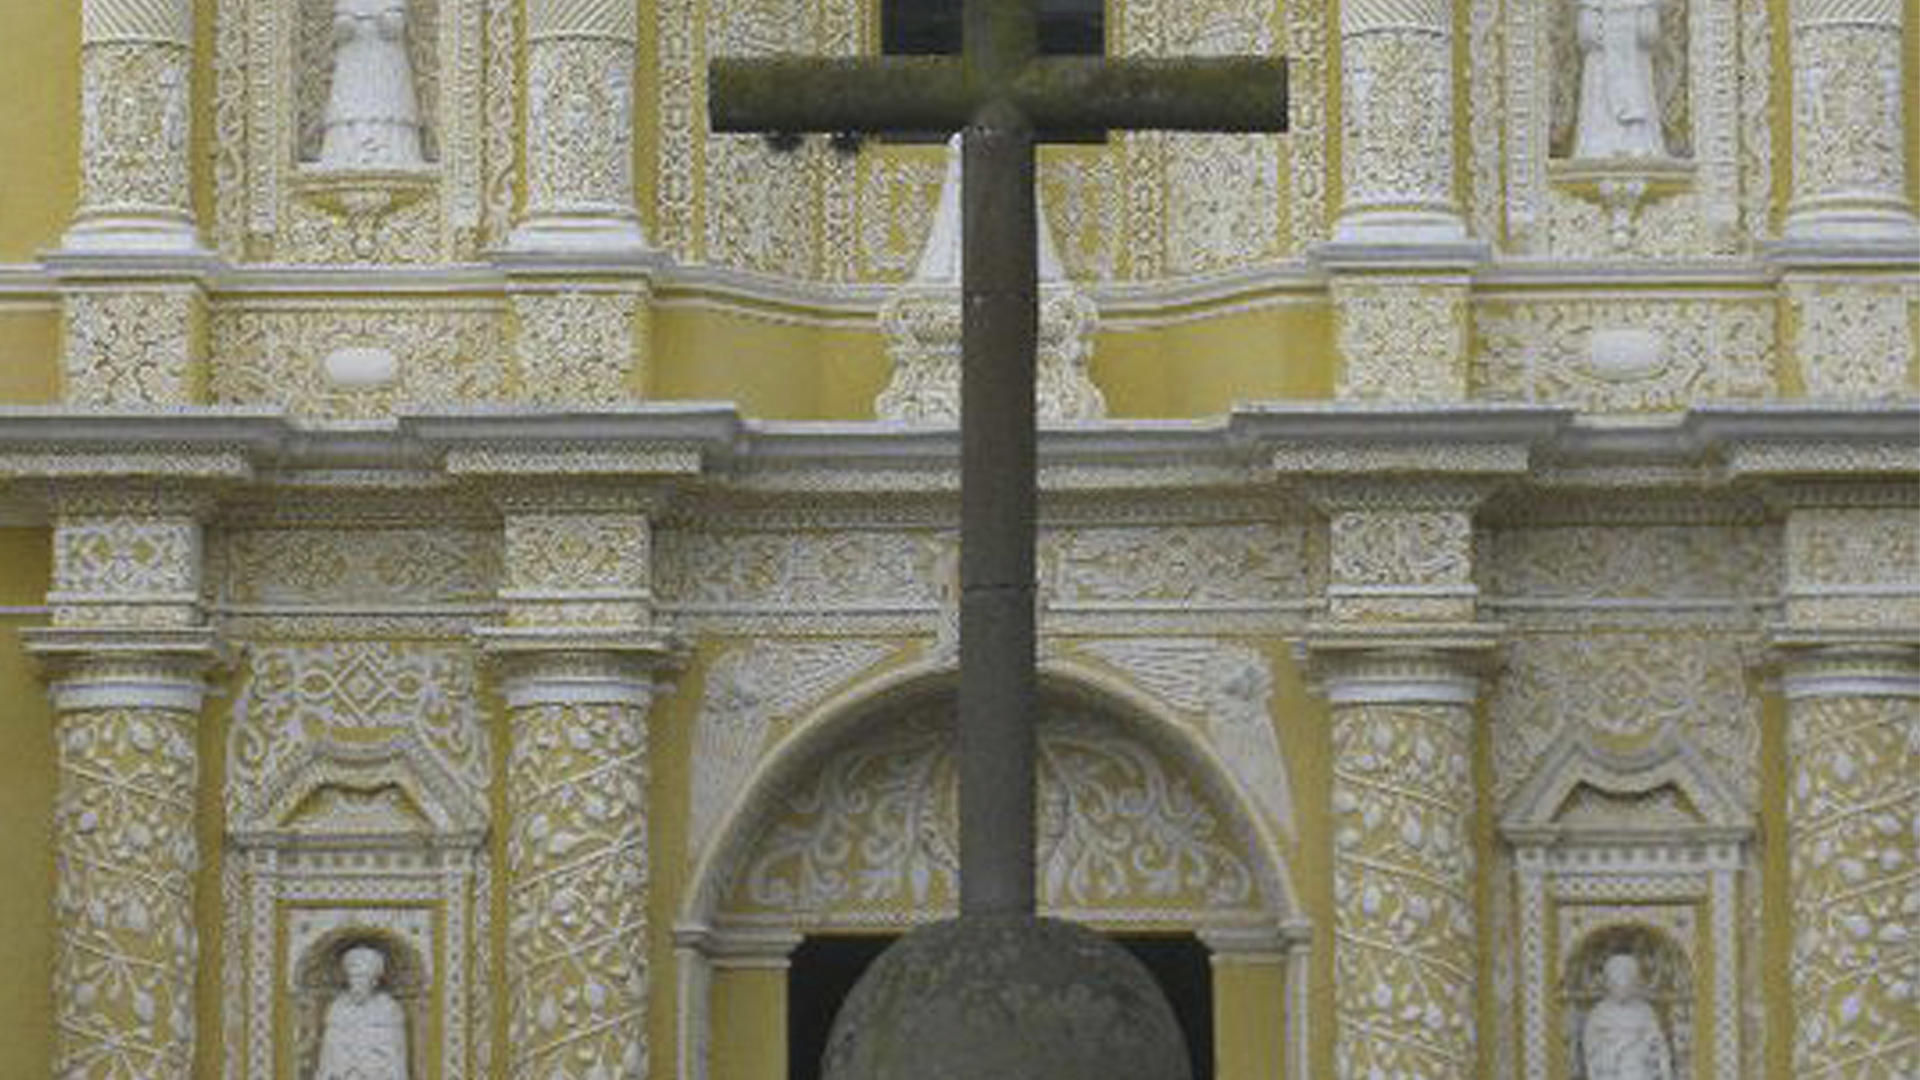 a cross outside an ornate church